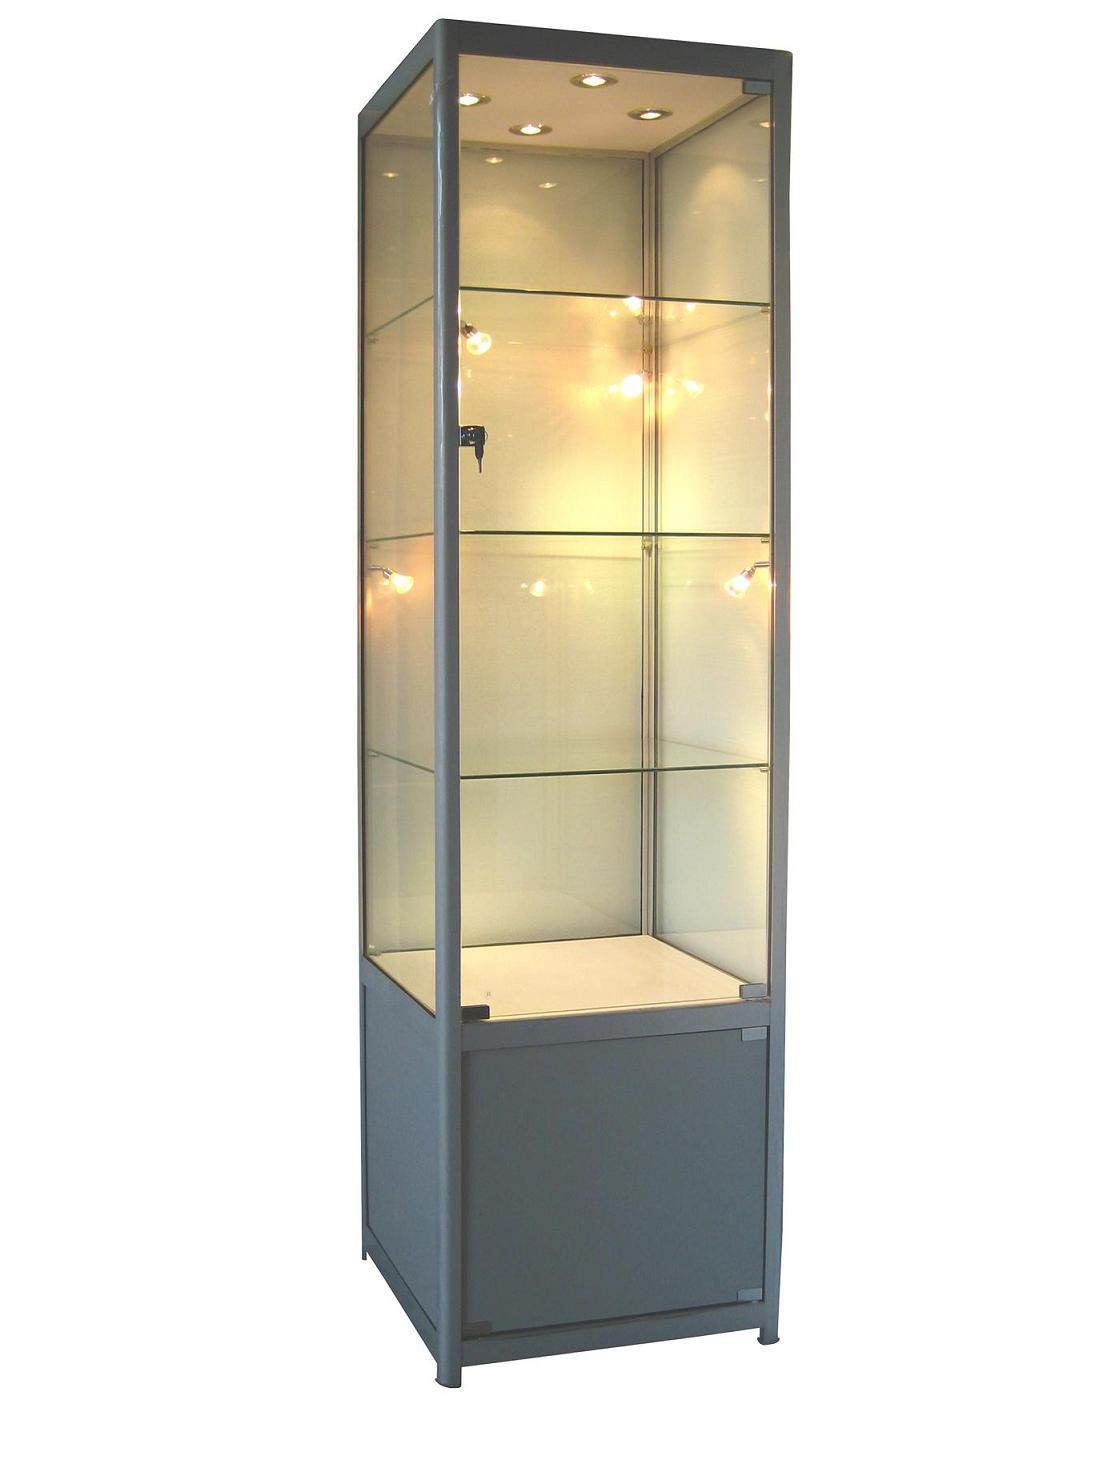 Le Meilleur China Glass Cabinet Fd A018 1 China Showcase Glass Ce Mois Ci